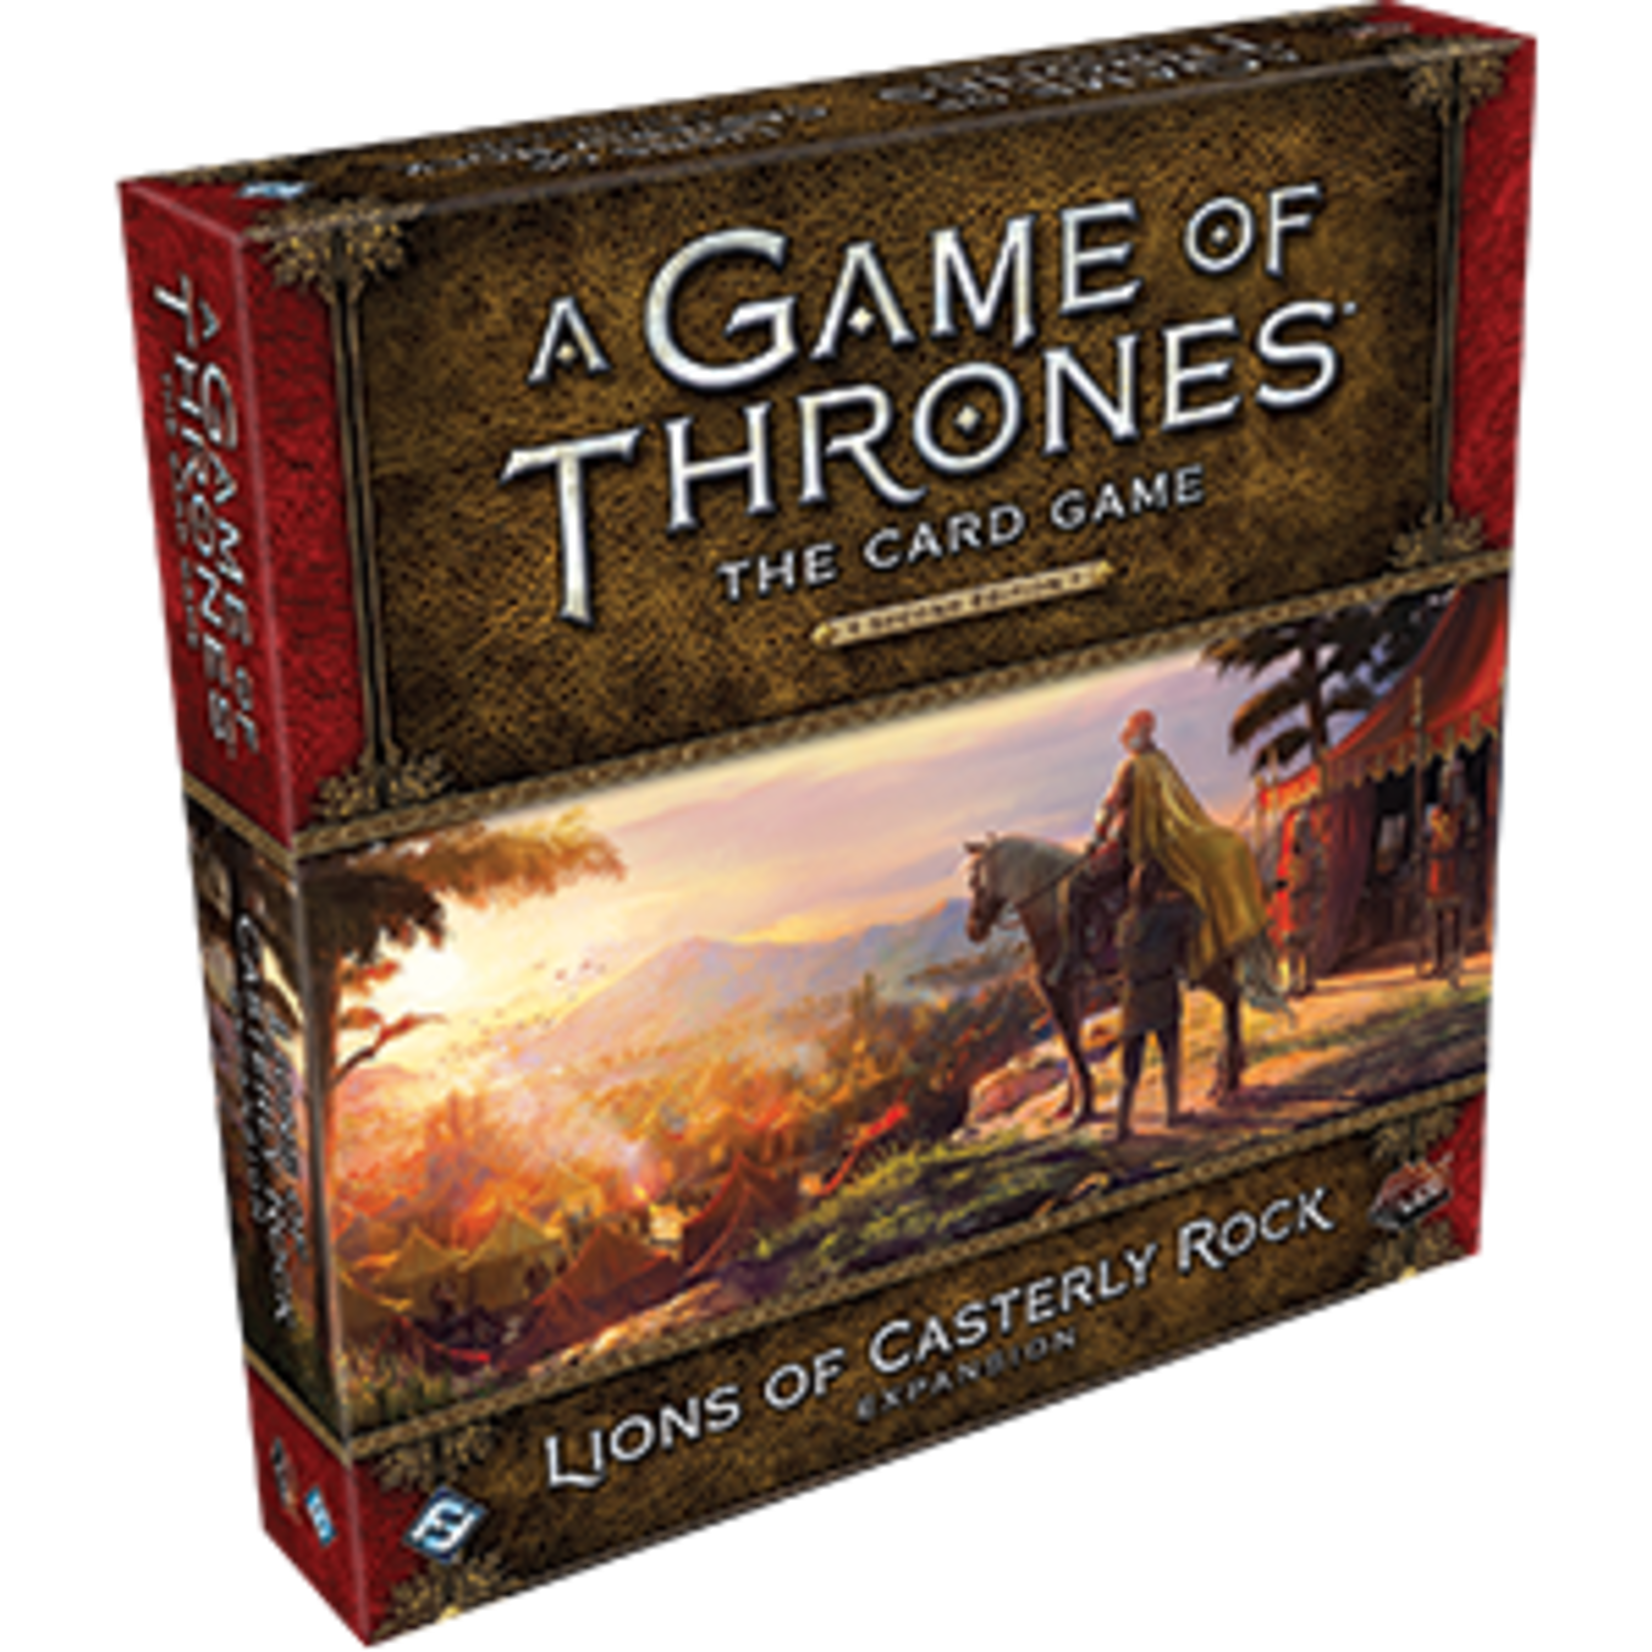 Fantasy Flight Games A Game of Thrones Card Game 2nd Edition: Lions of Casterly Rock Deluxe Expansion